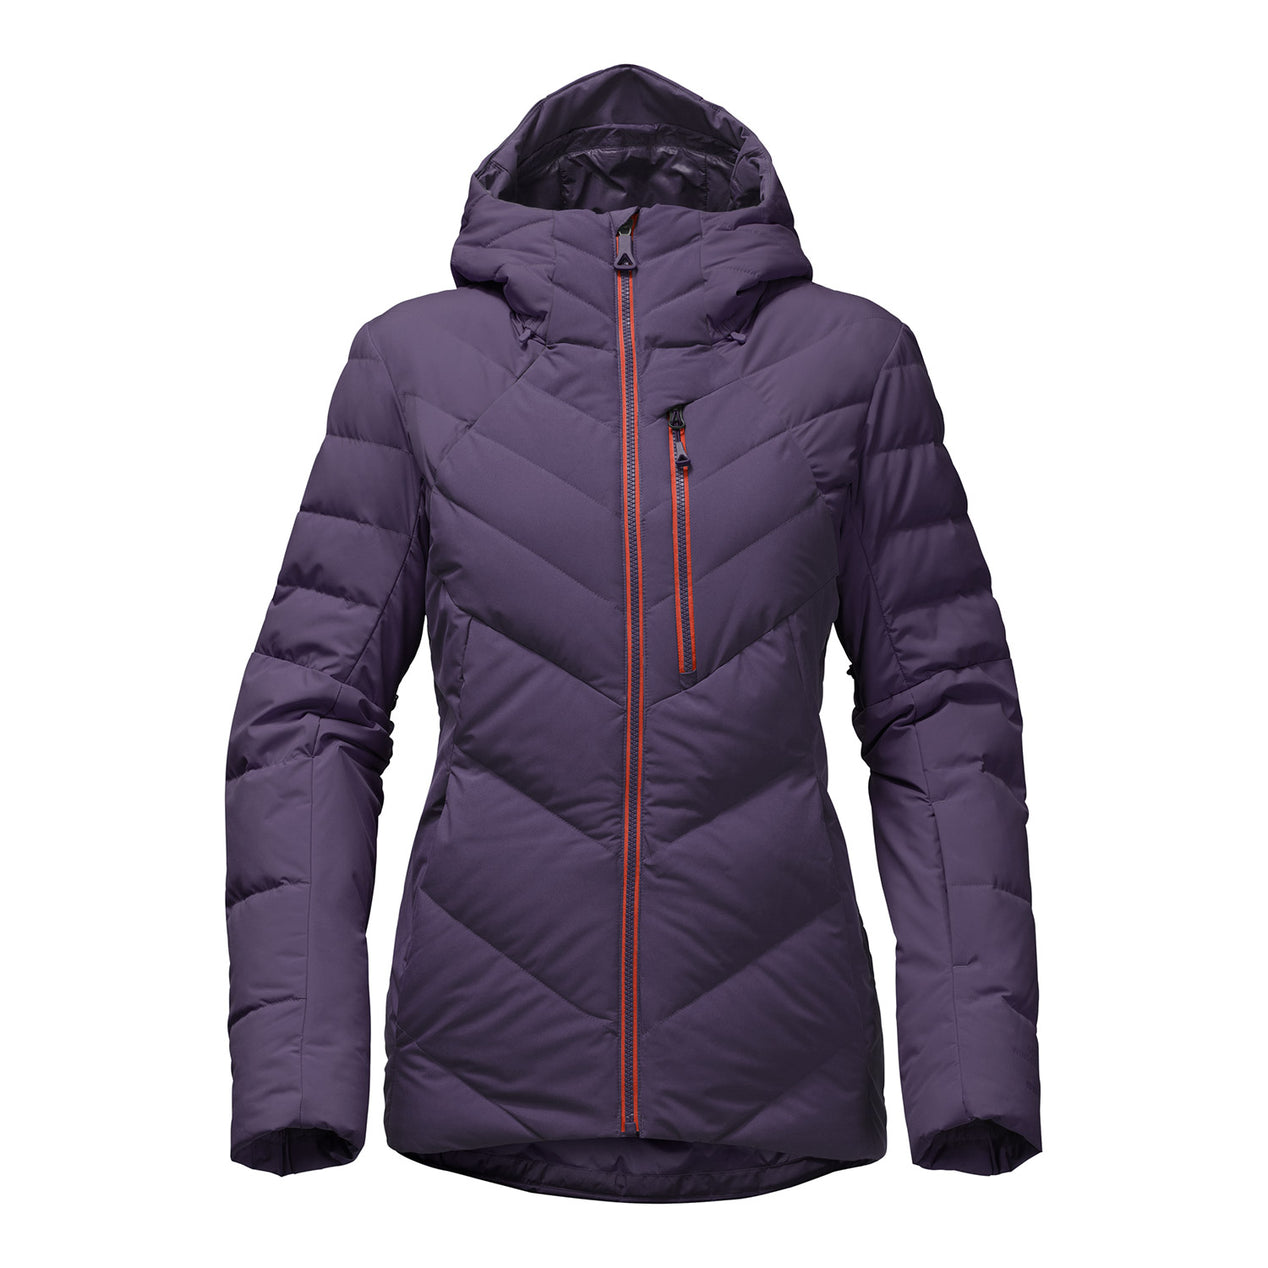 d8c83895c The North Face Women's Corefire Down Jacket